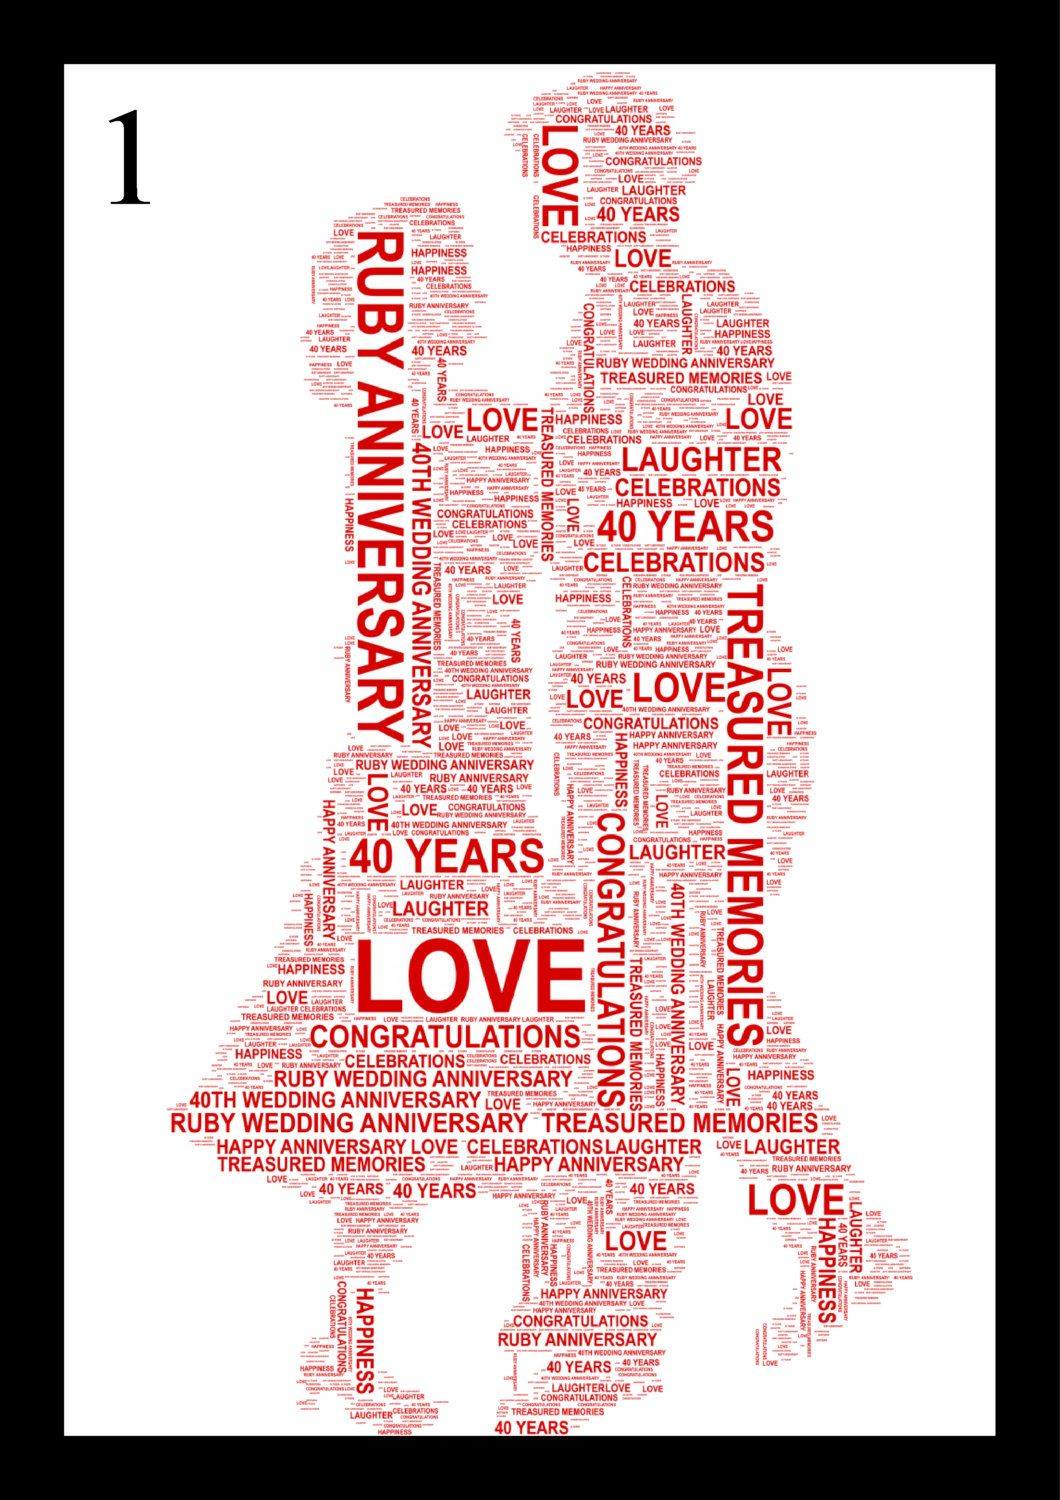 Ruby Wedding Anniversary Gifts Uk: Couple Holding Hands. FREE UK P&P. 40th